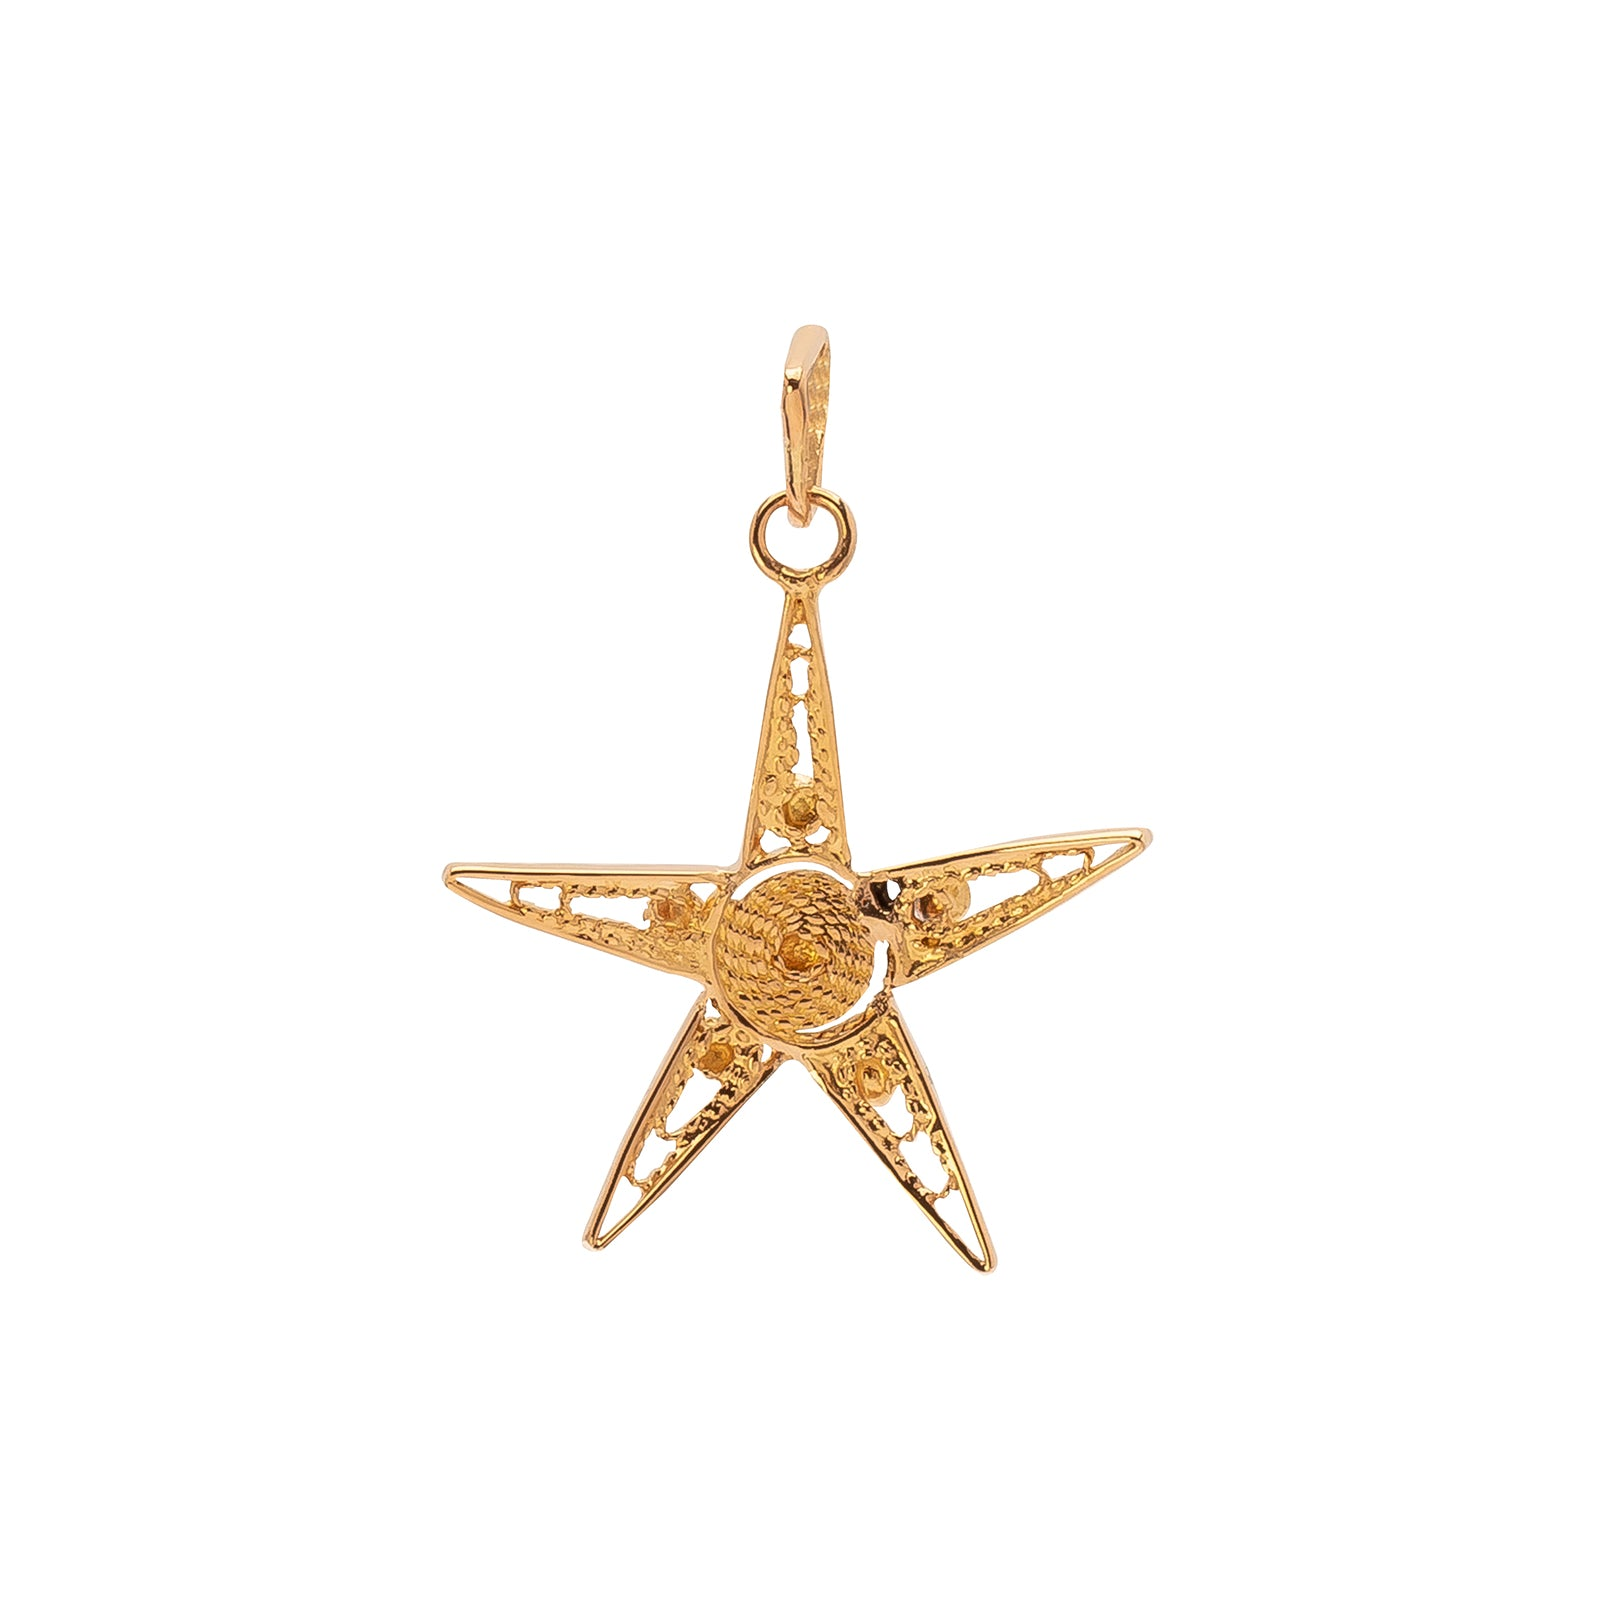 Antique & Vintage Jewelry Wirework Star Charm - Charms & Pendants - Broken English Jewelry